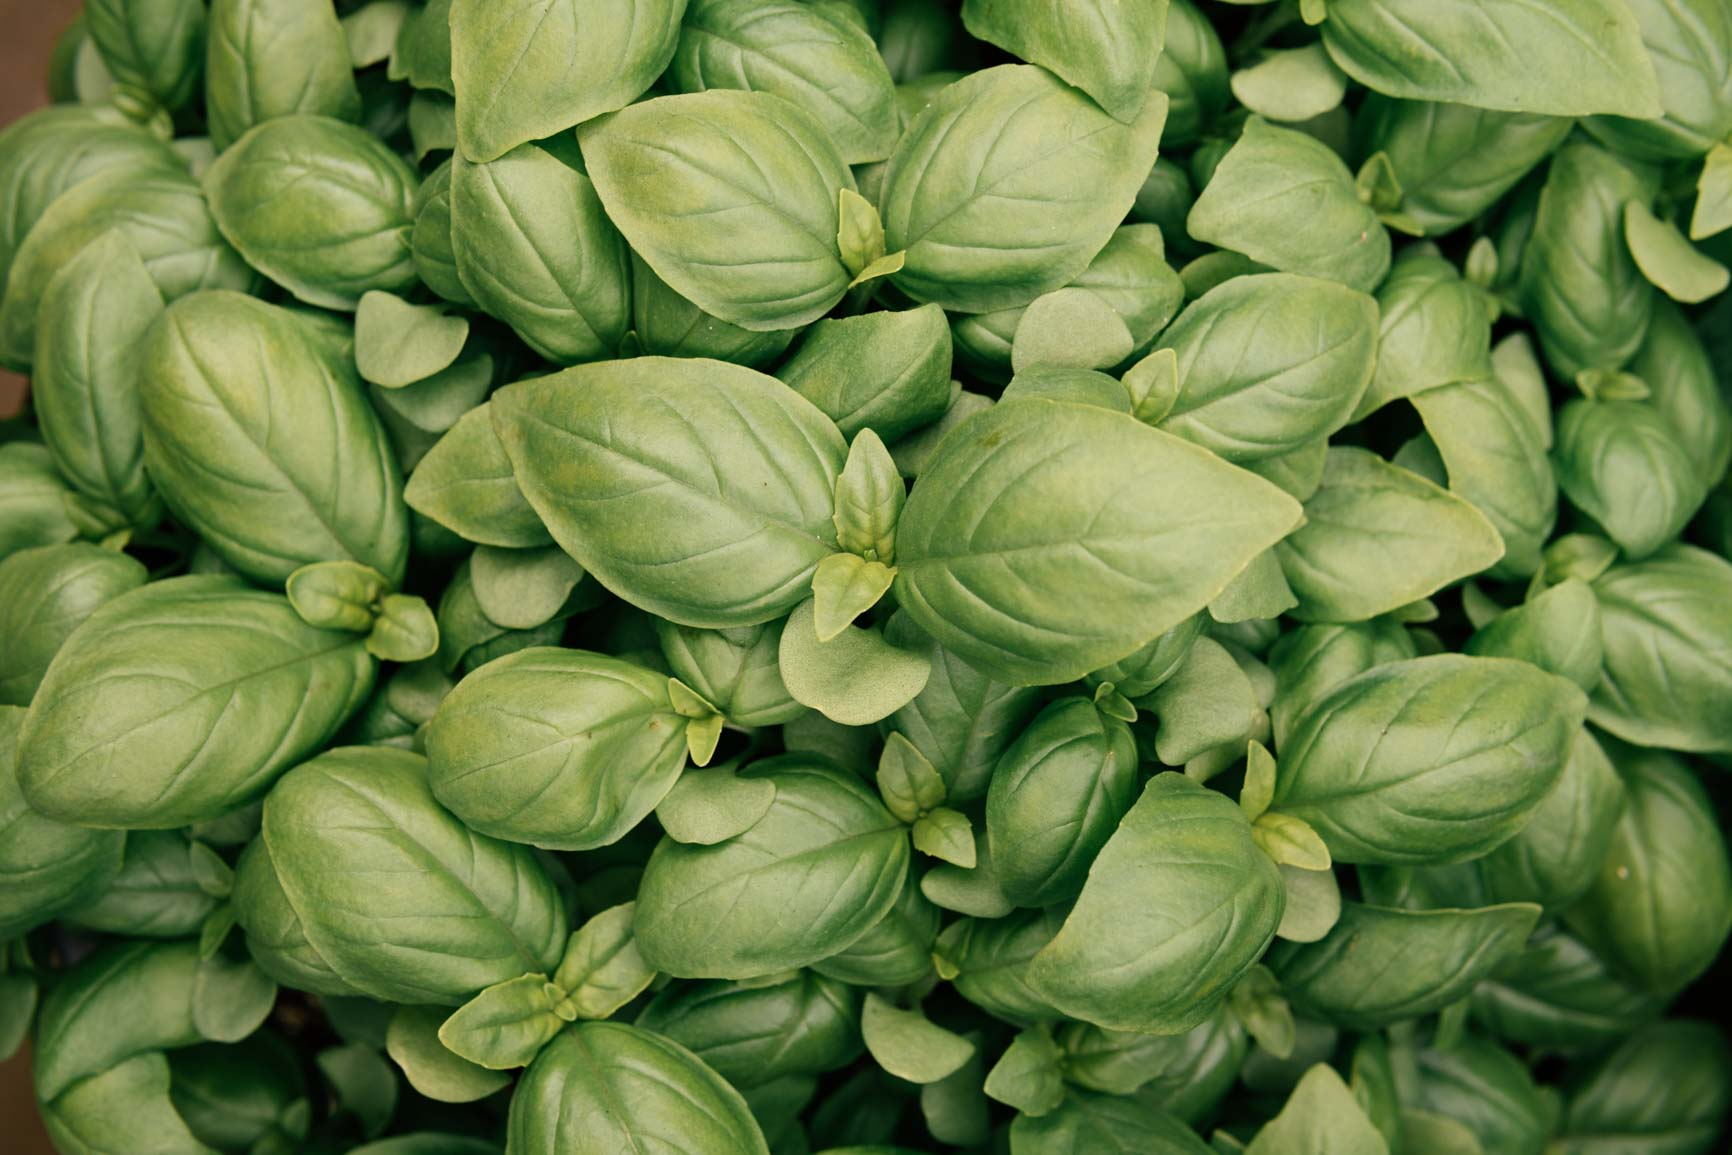 Basil plants from above